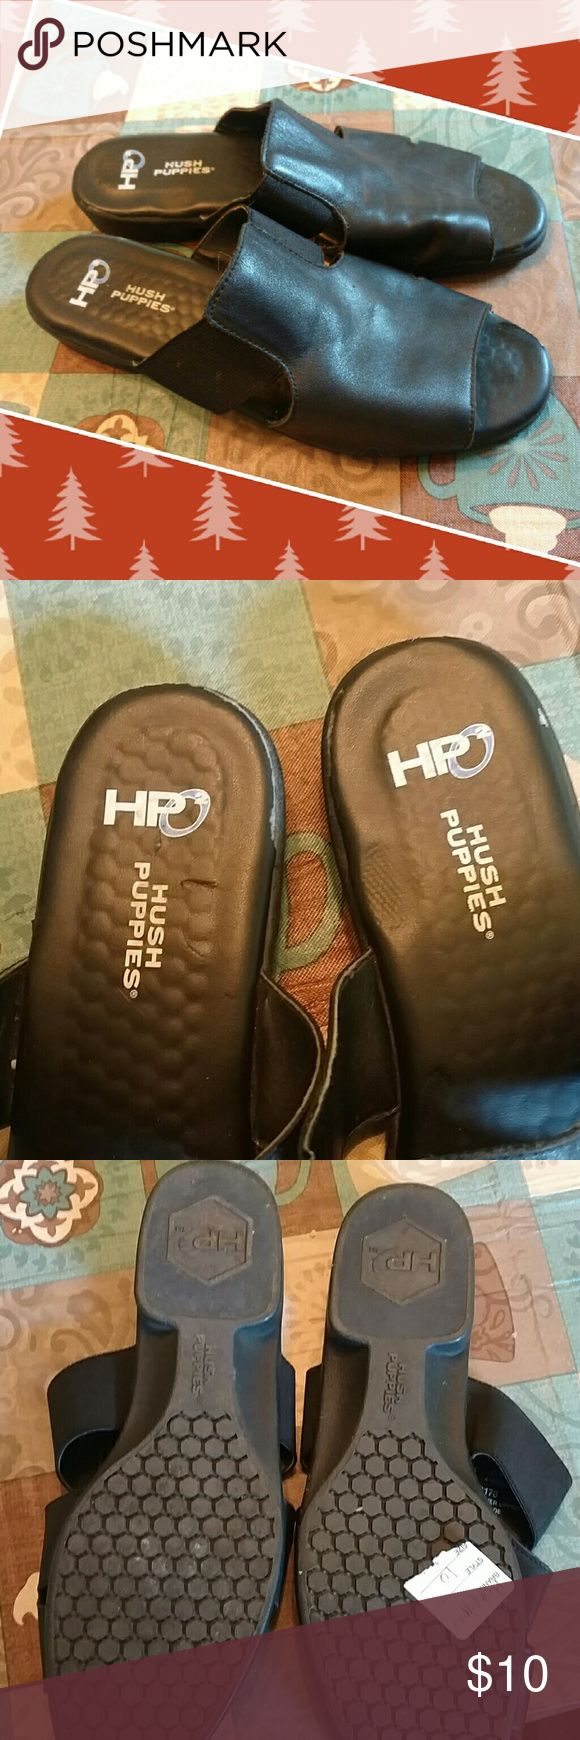 Leather hush puppies sz 10 Preloved black leather sandals in very good condition. Sz ten Hush Puppies Shoes Sandals